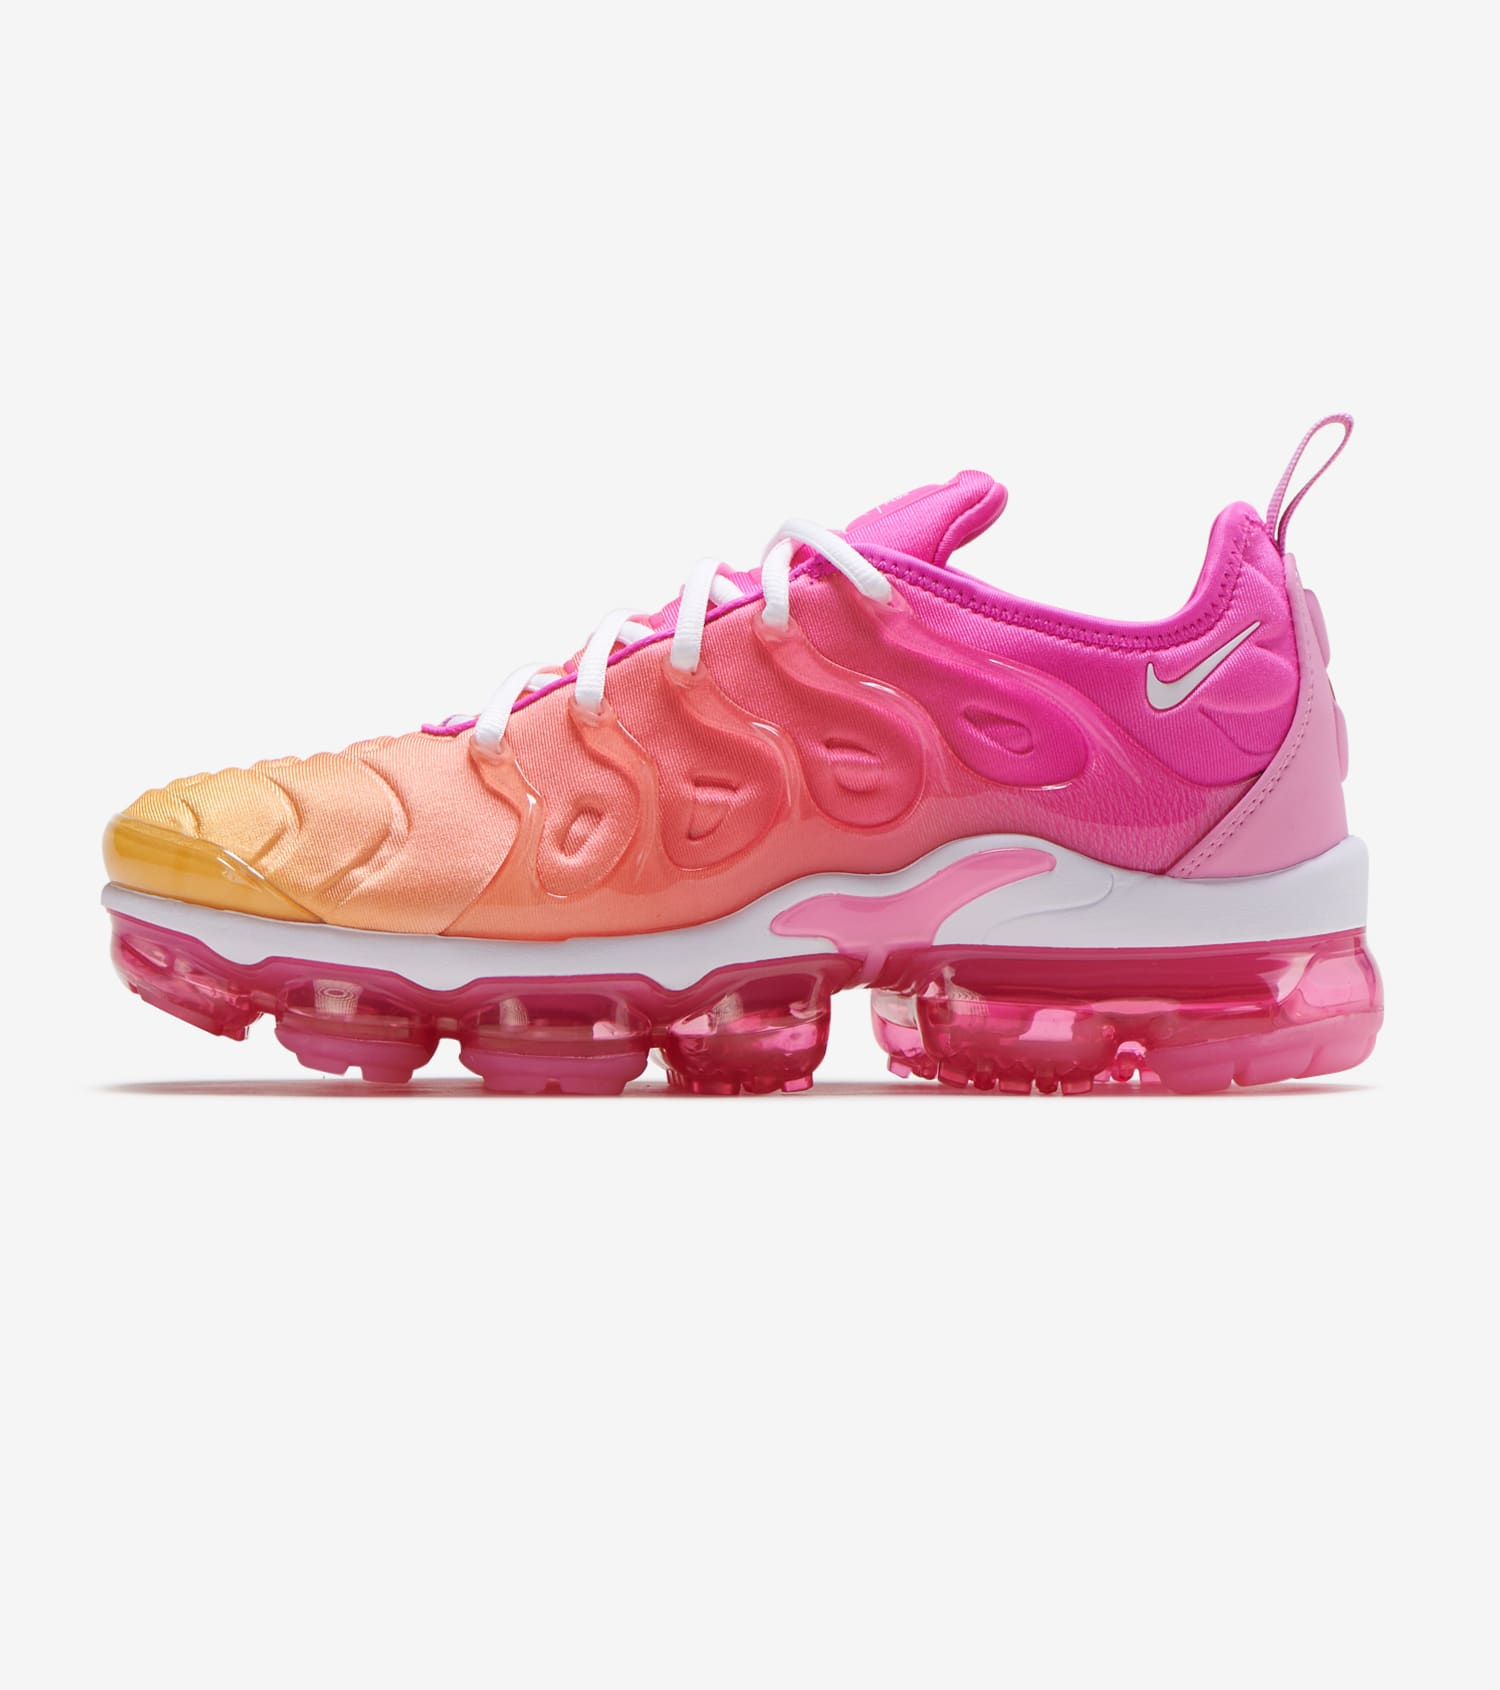 new style 5824f 45152 Air Vapormax Plus